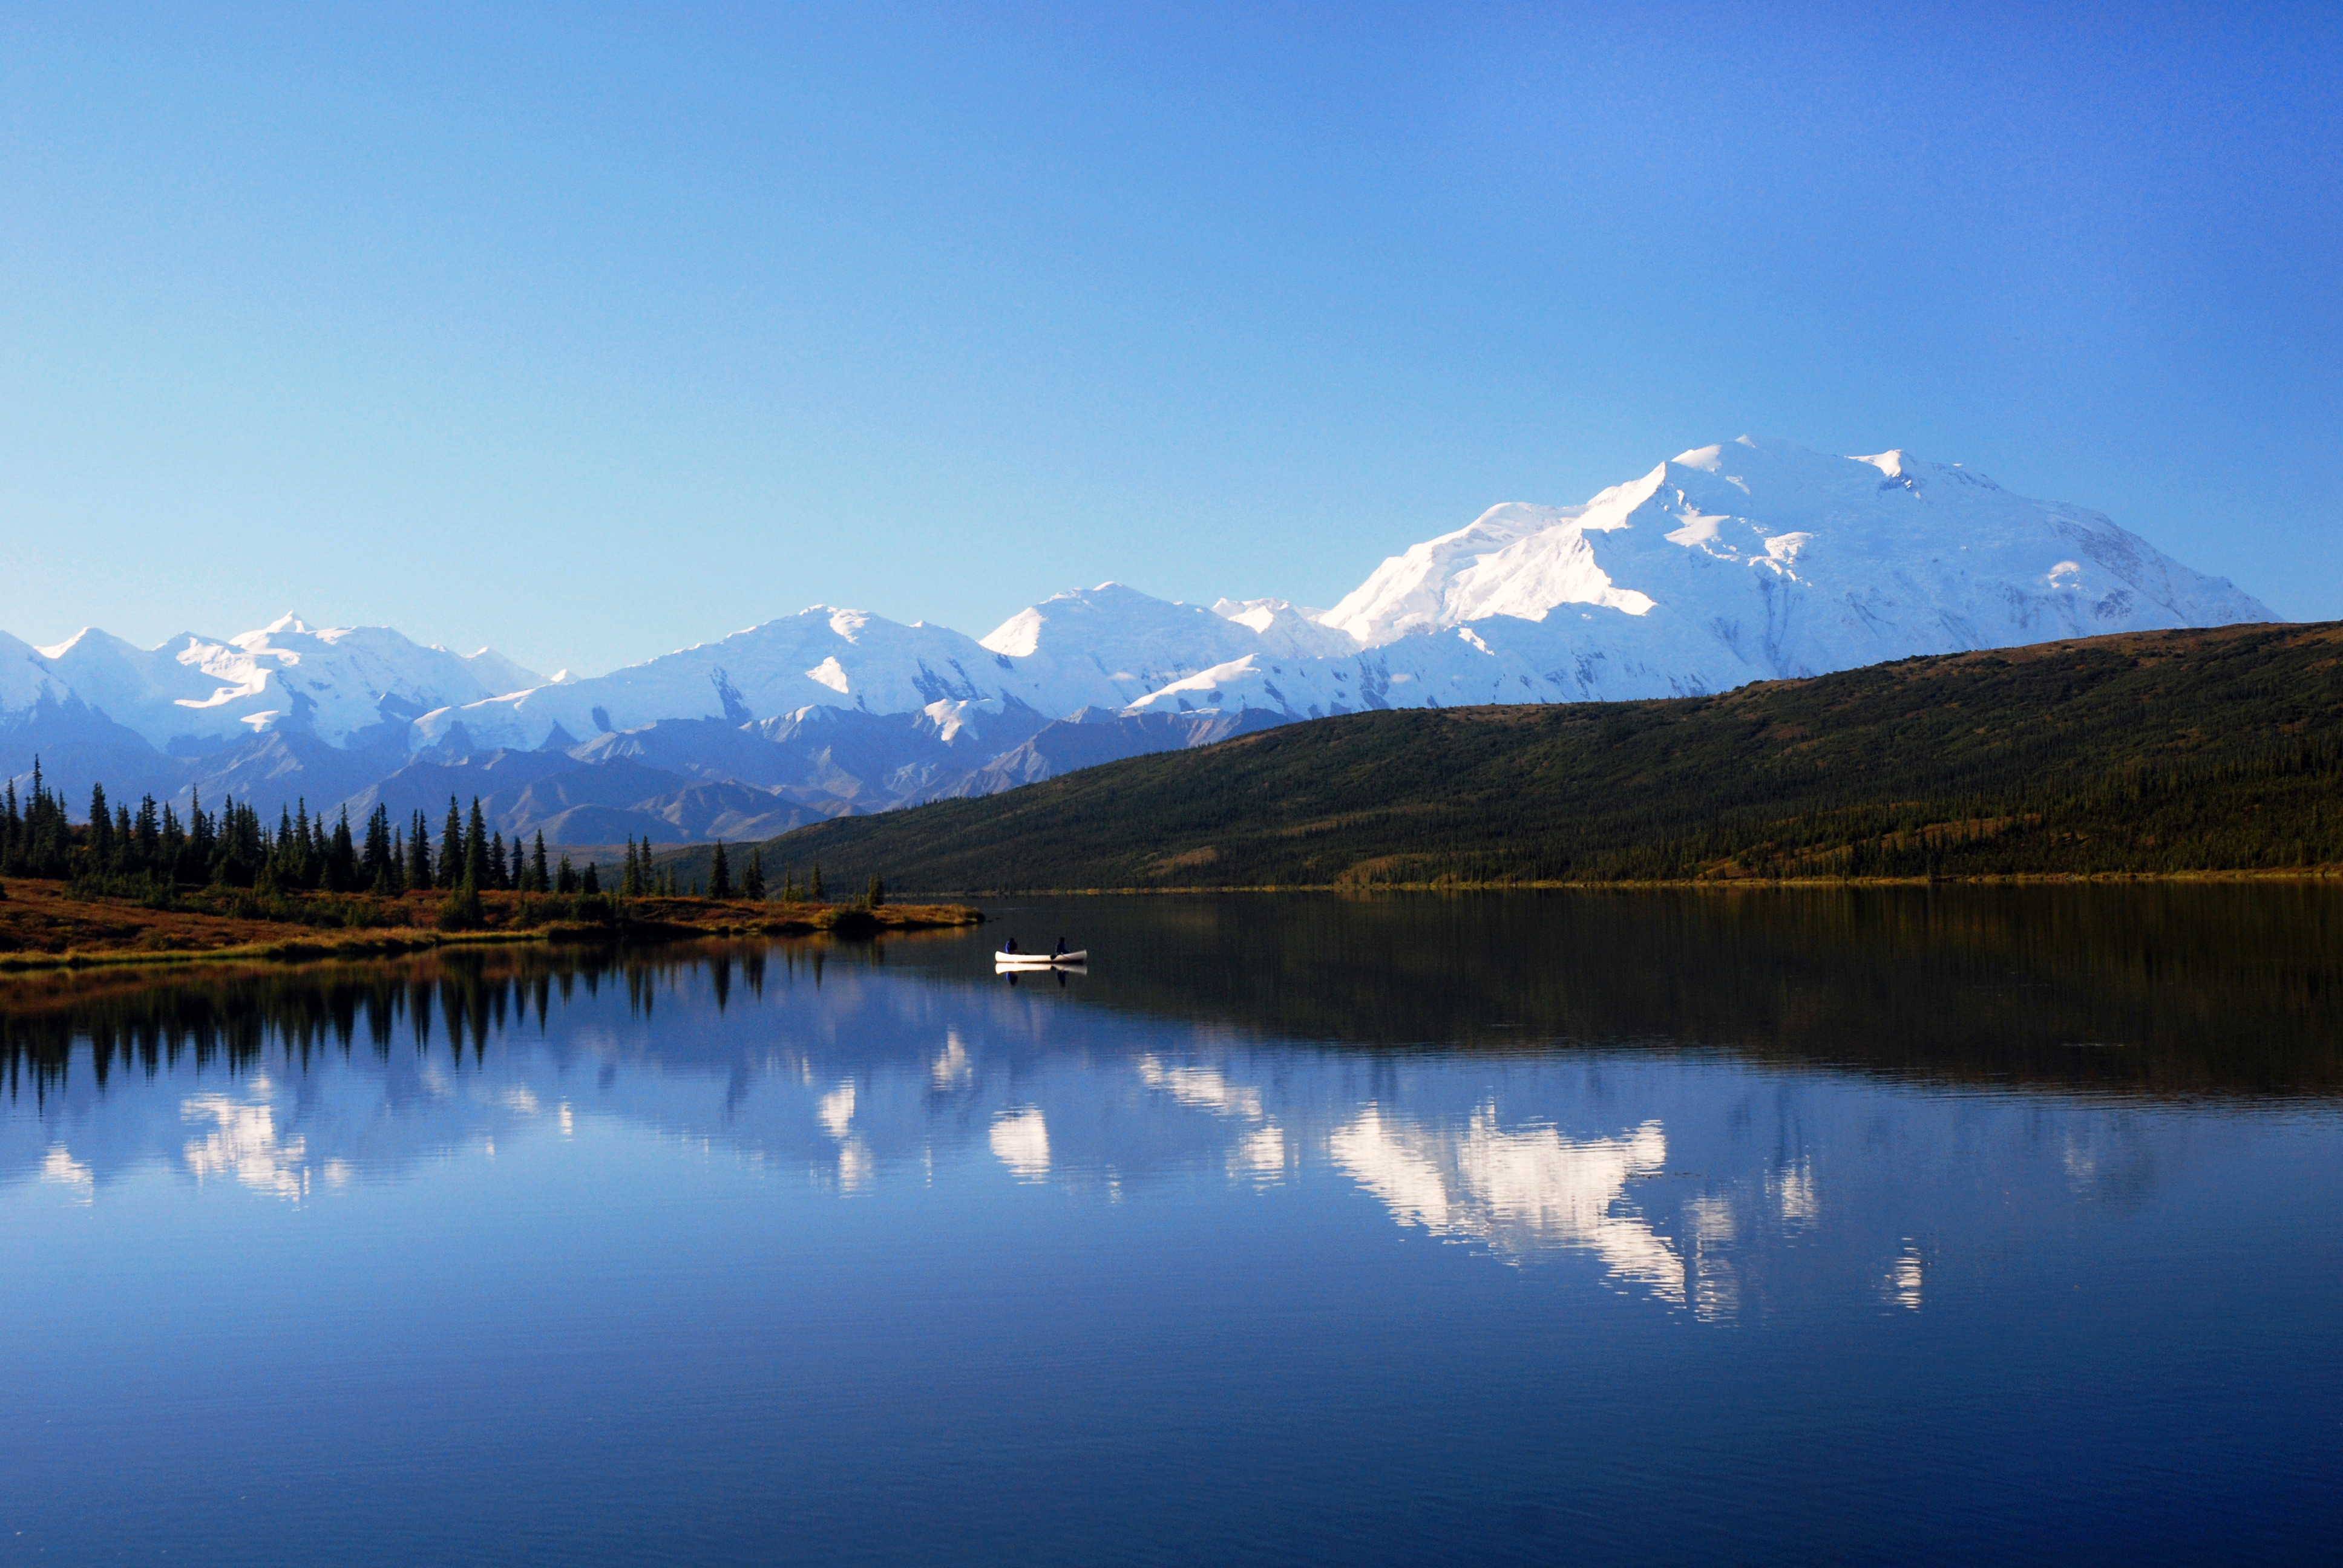 Mountains and lake in Denali National Park and Preserve, Alaska